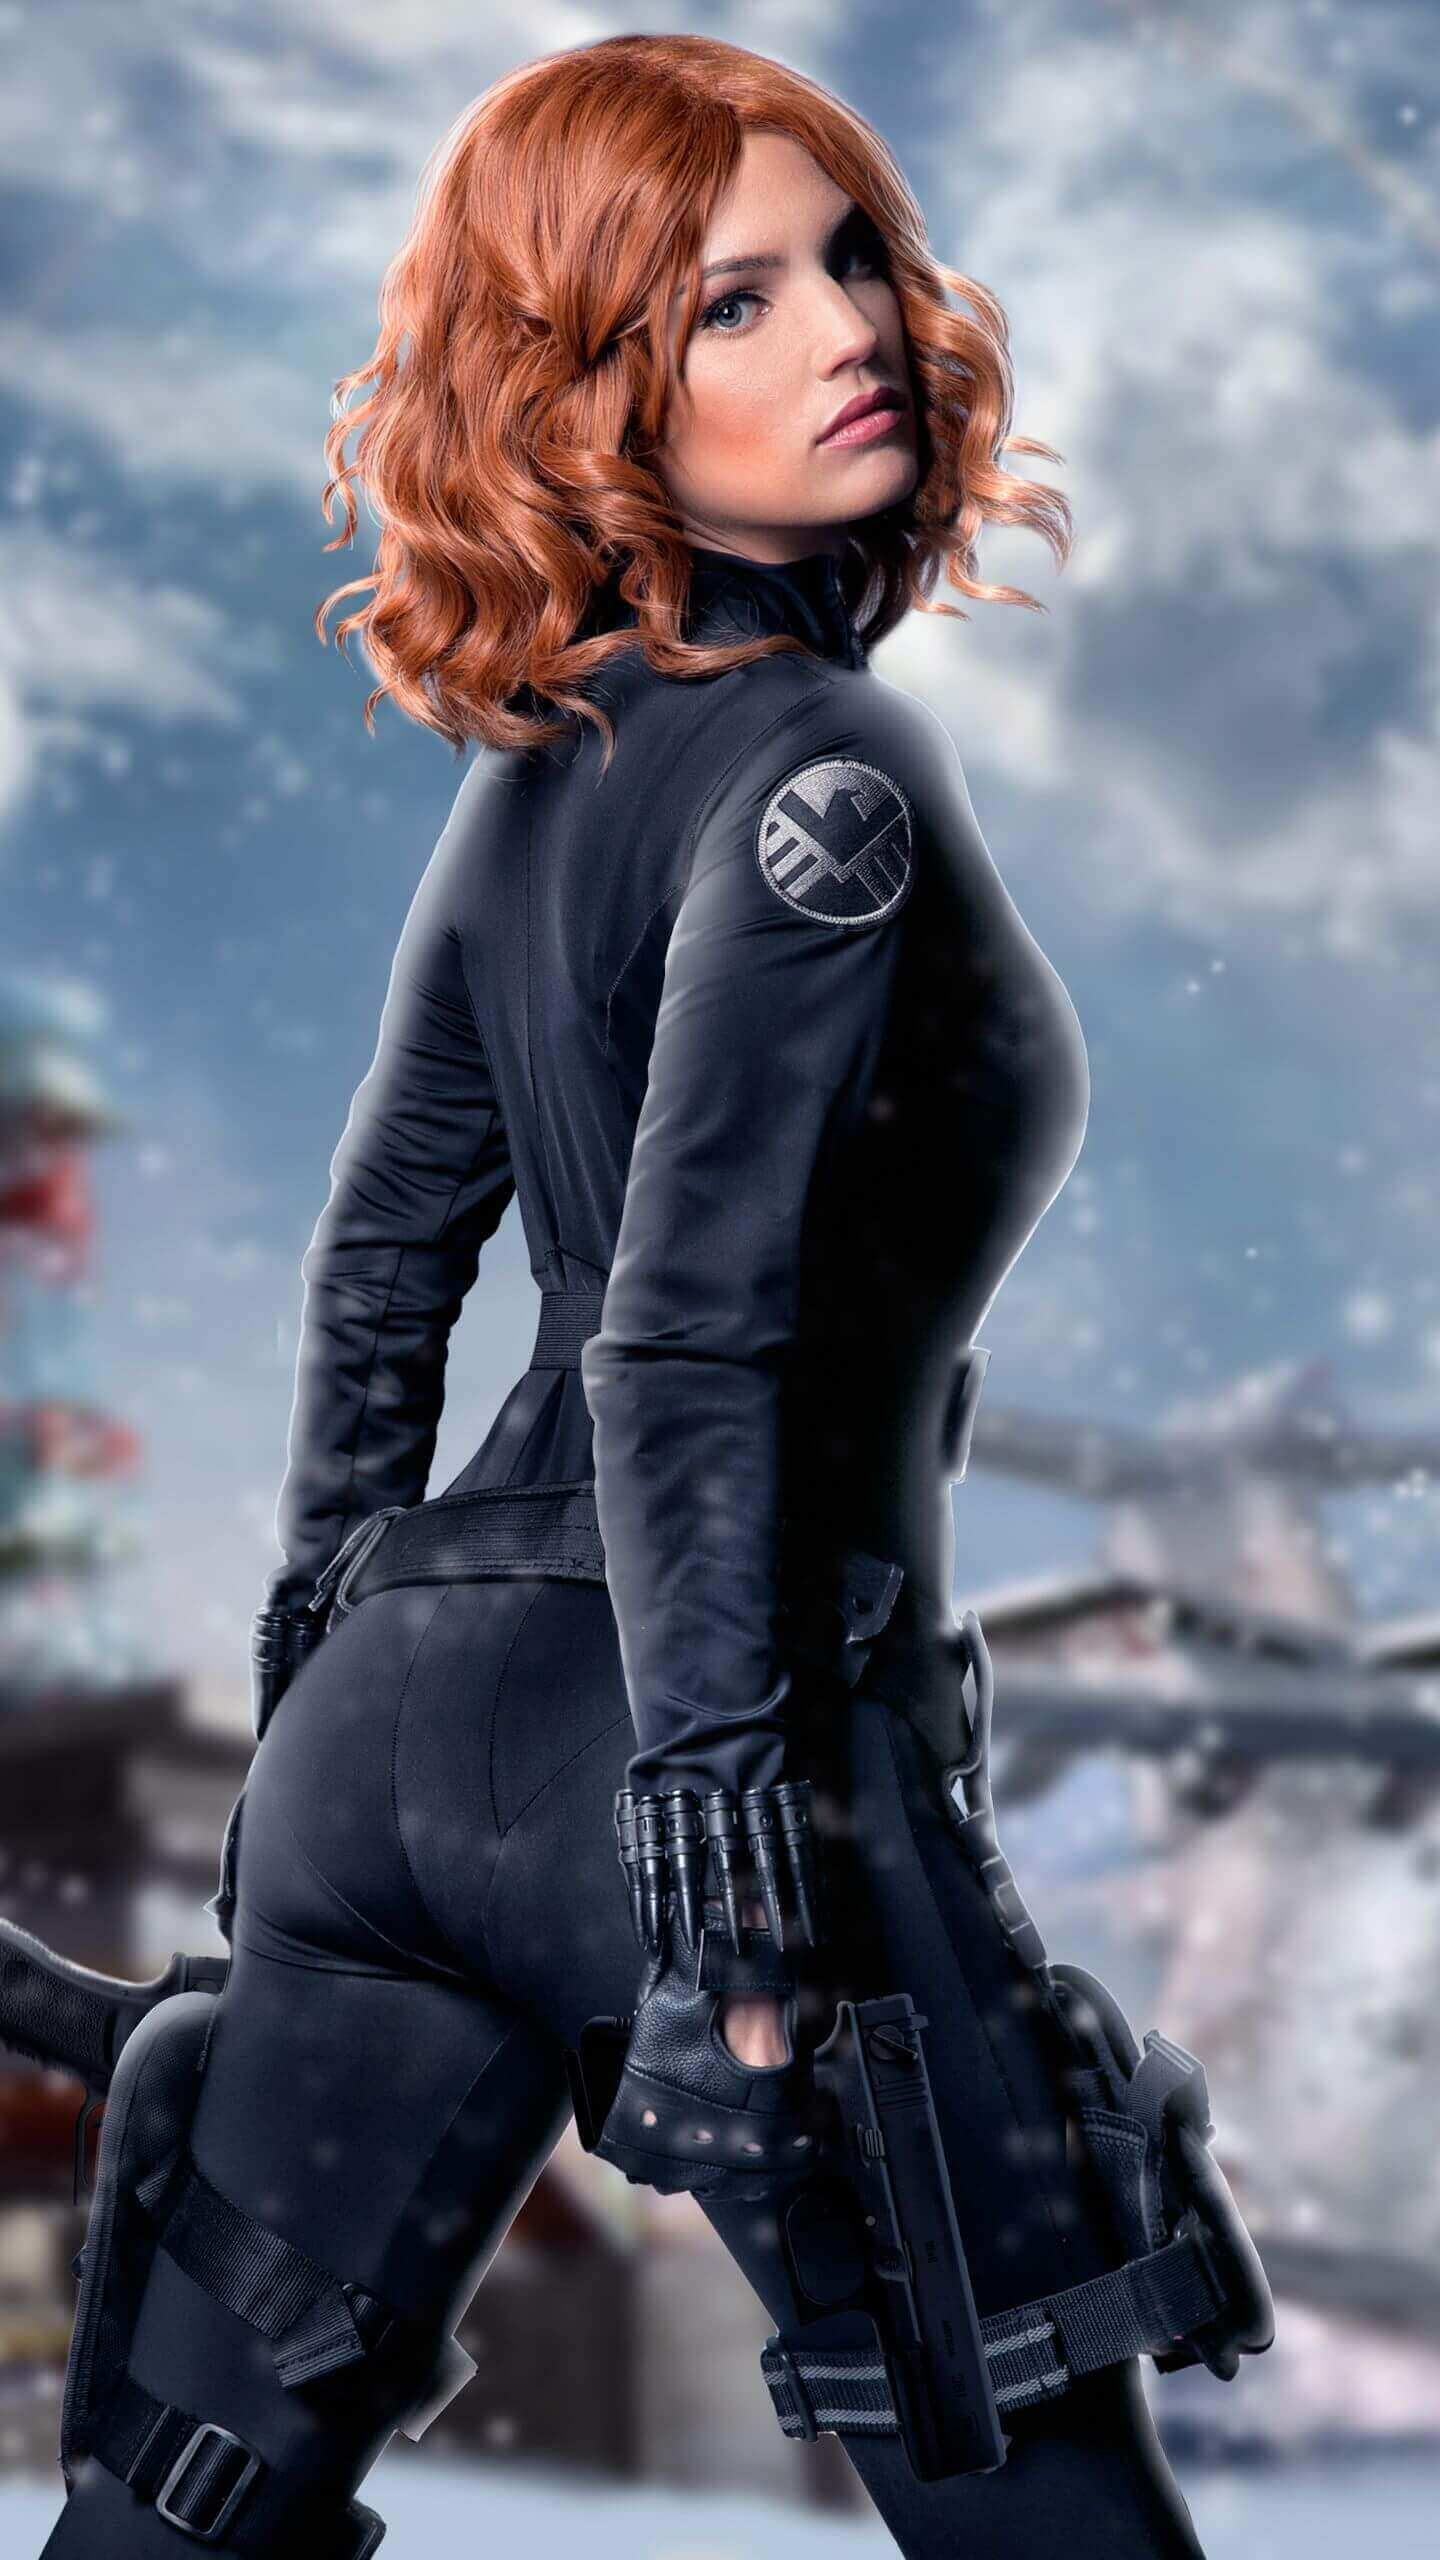 49 Hot Pictures Of Natasha Romanoff Which Will Make You Go